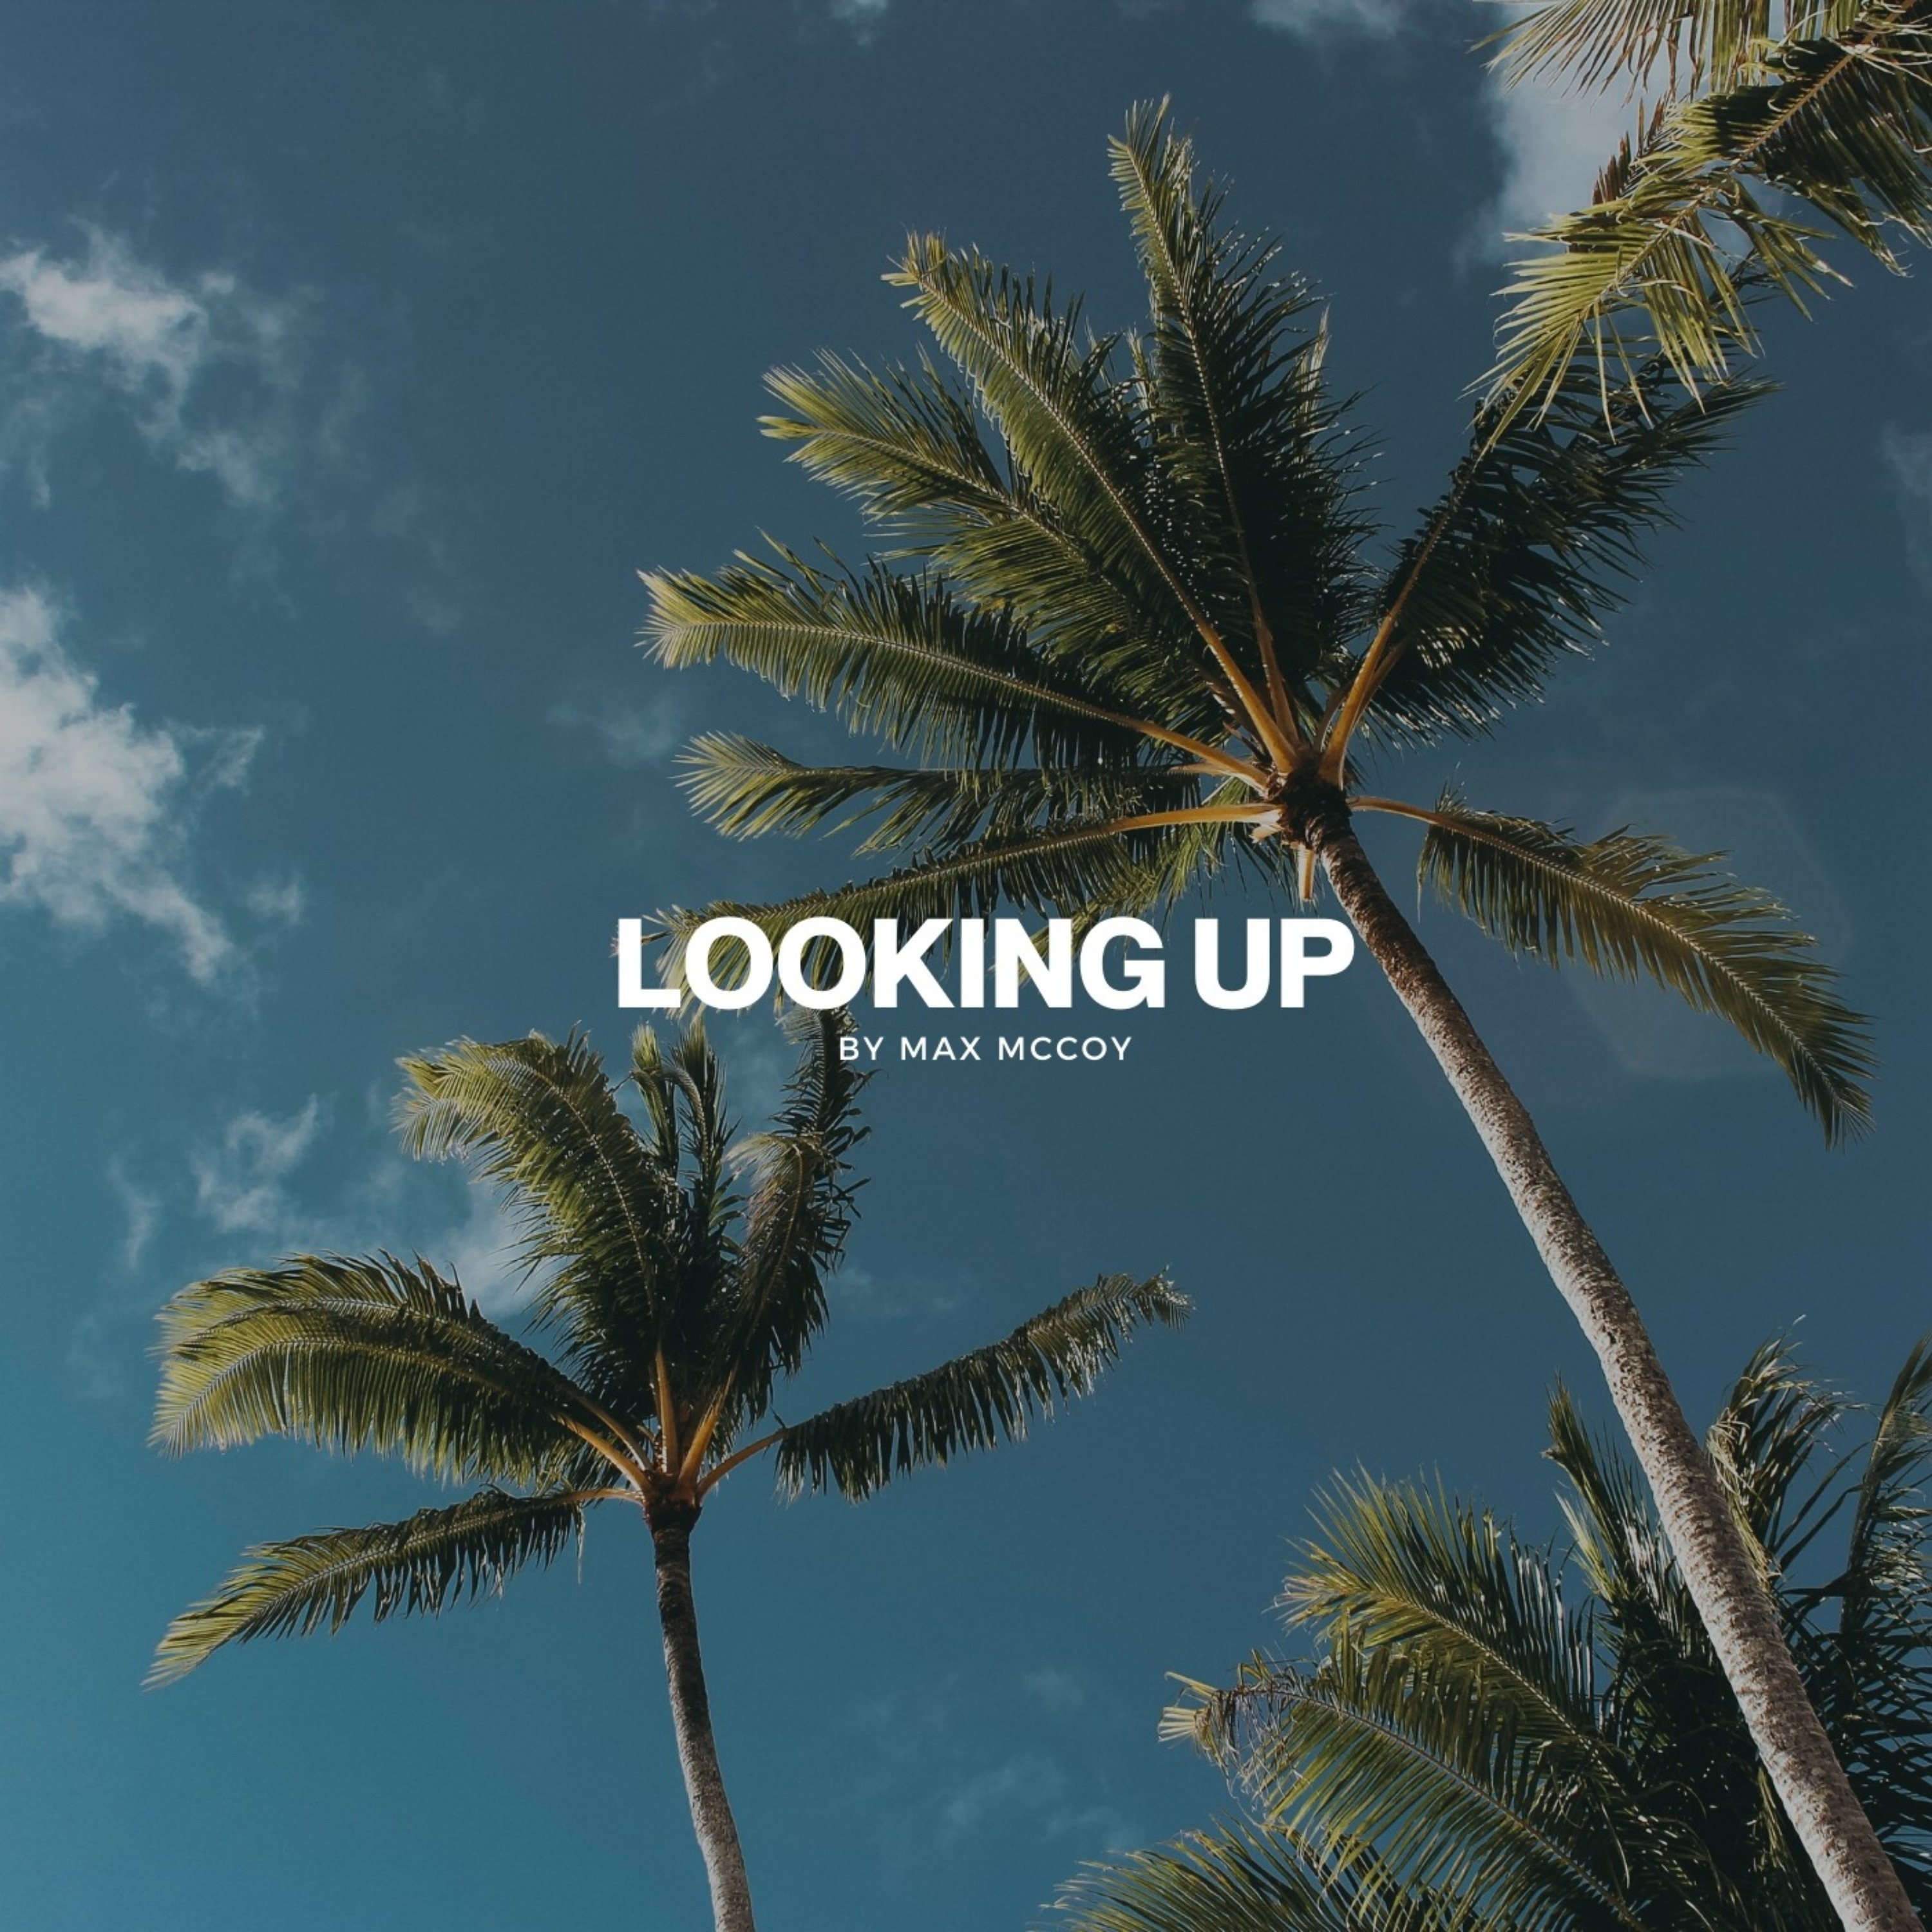 Looking Up - Max McCoy